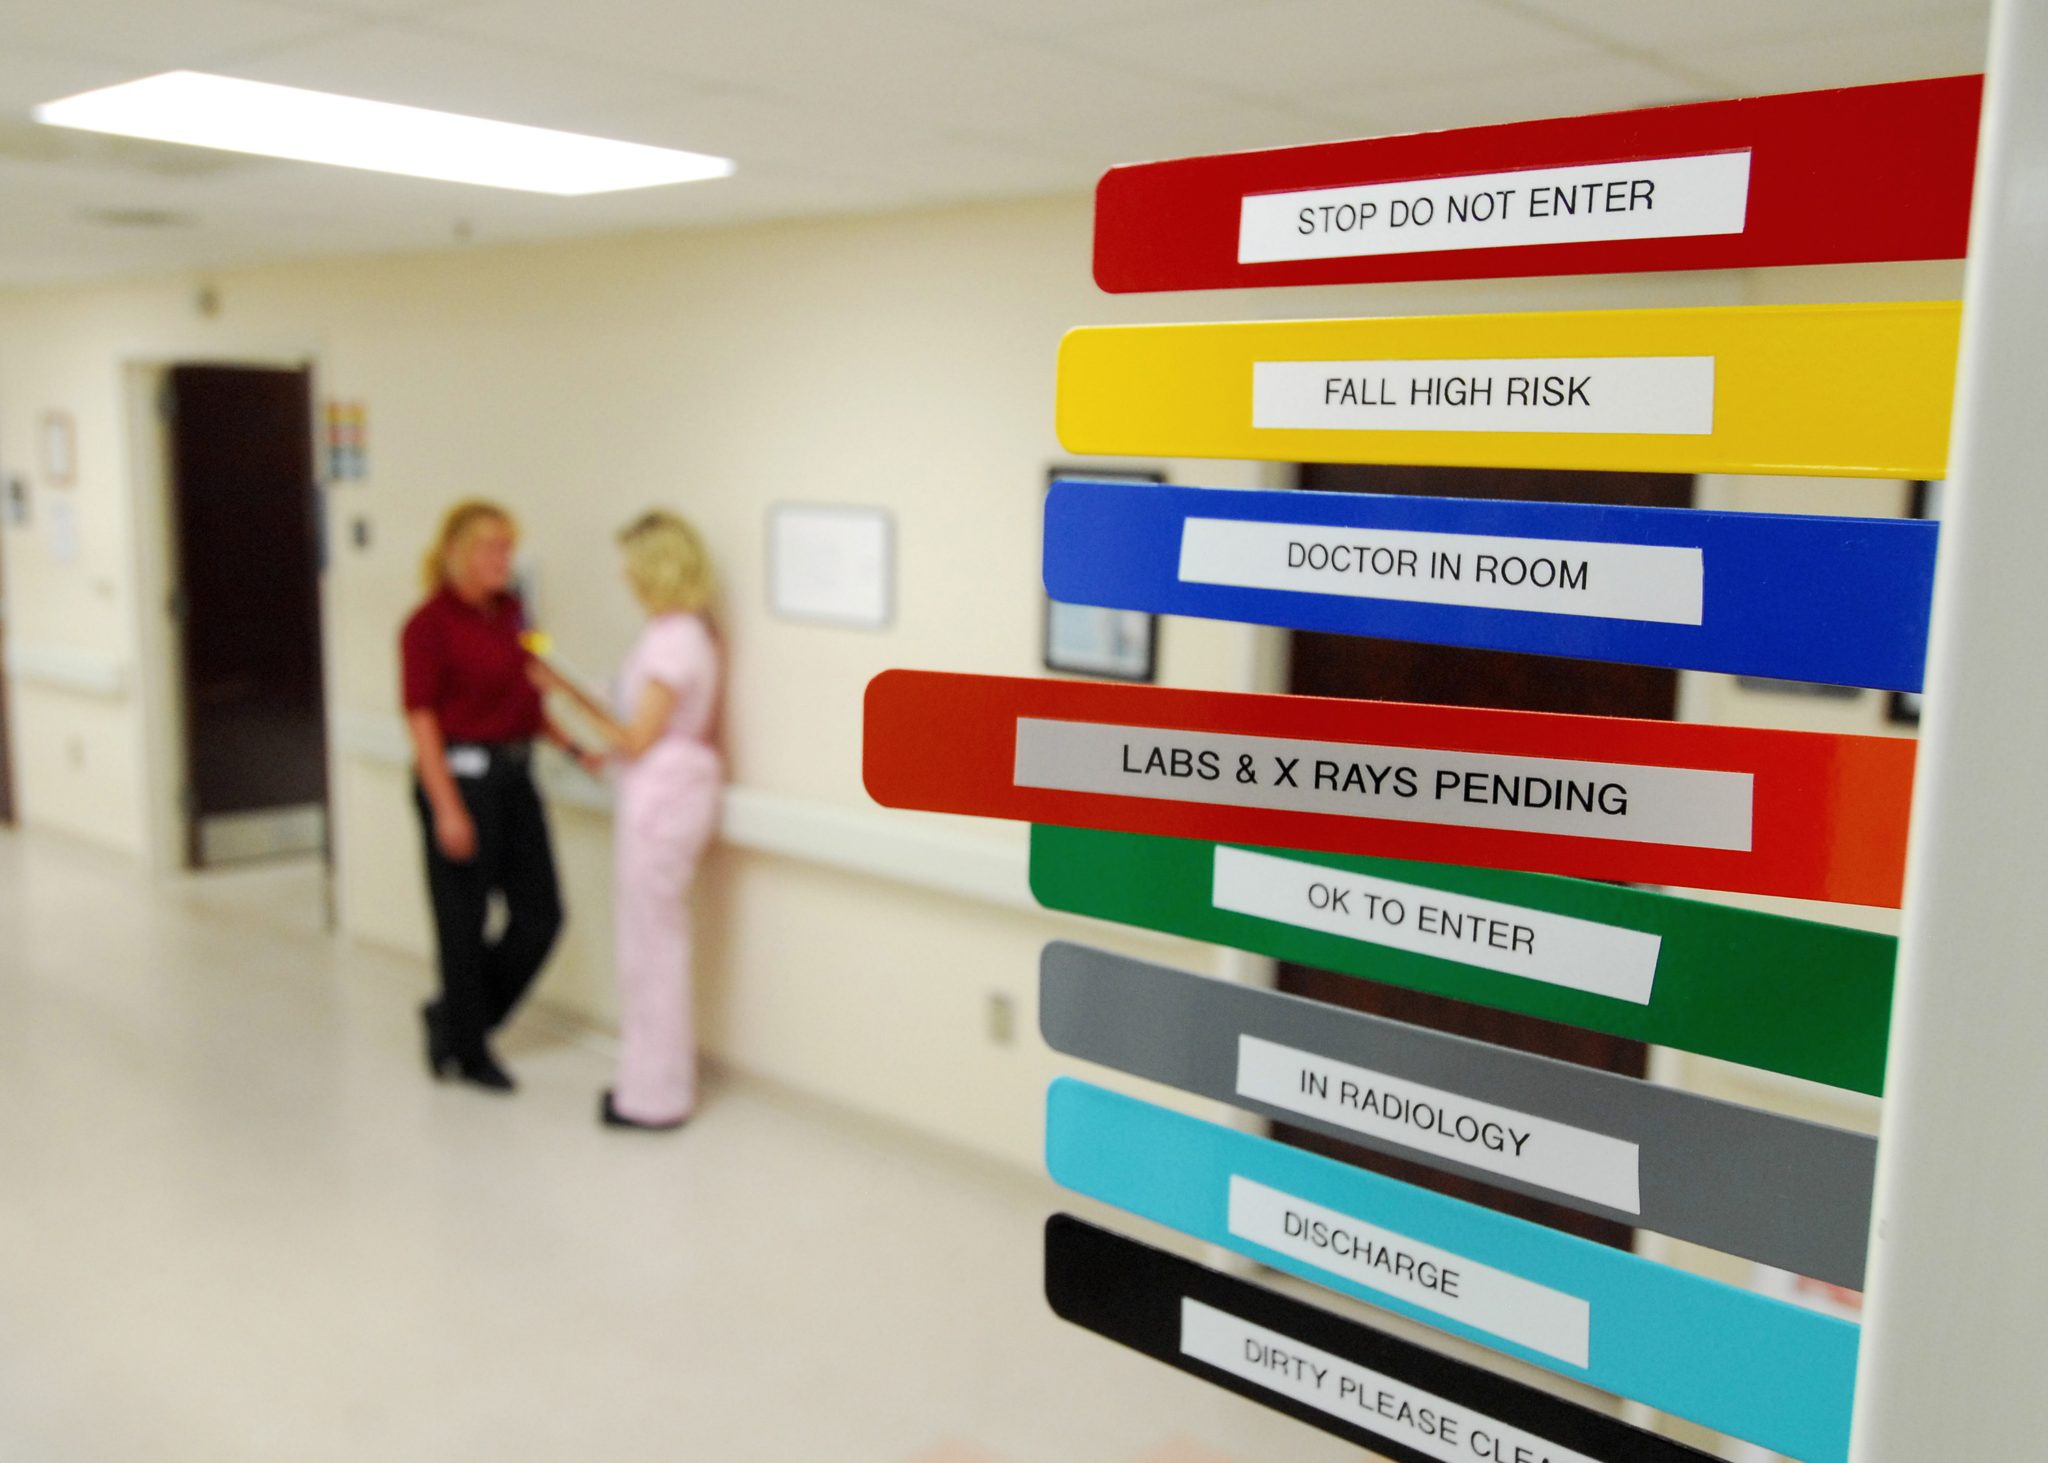 UAH 'on leading edge' in offering Lean Healthcare practices course